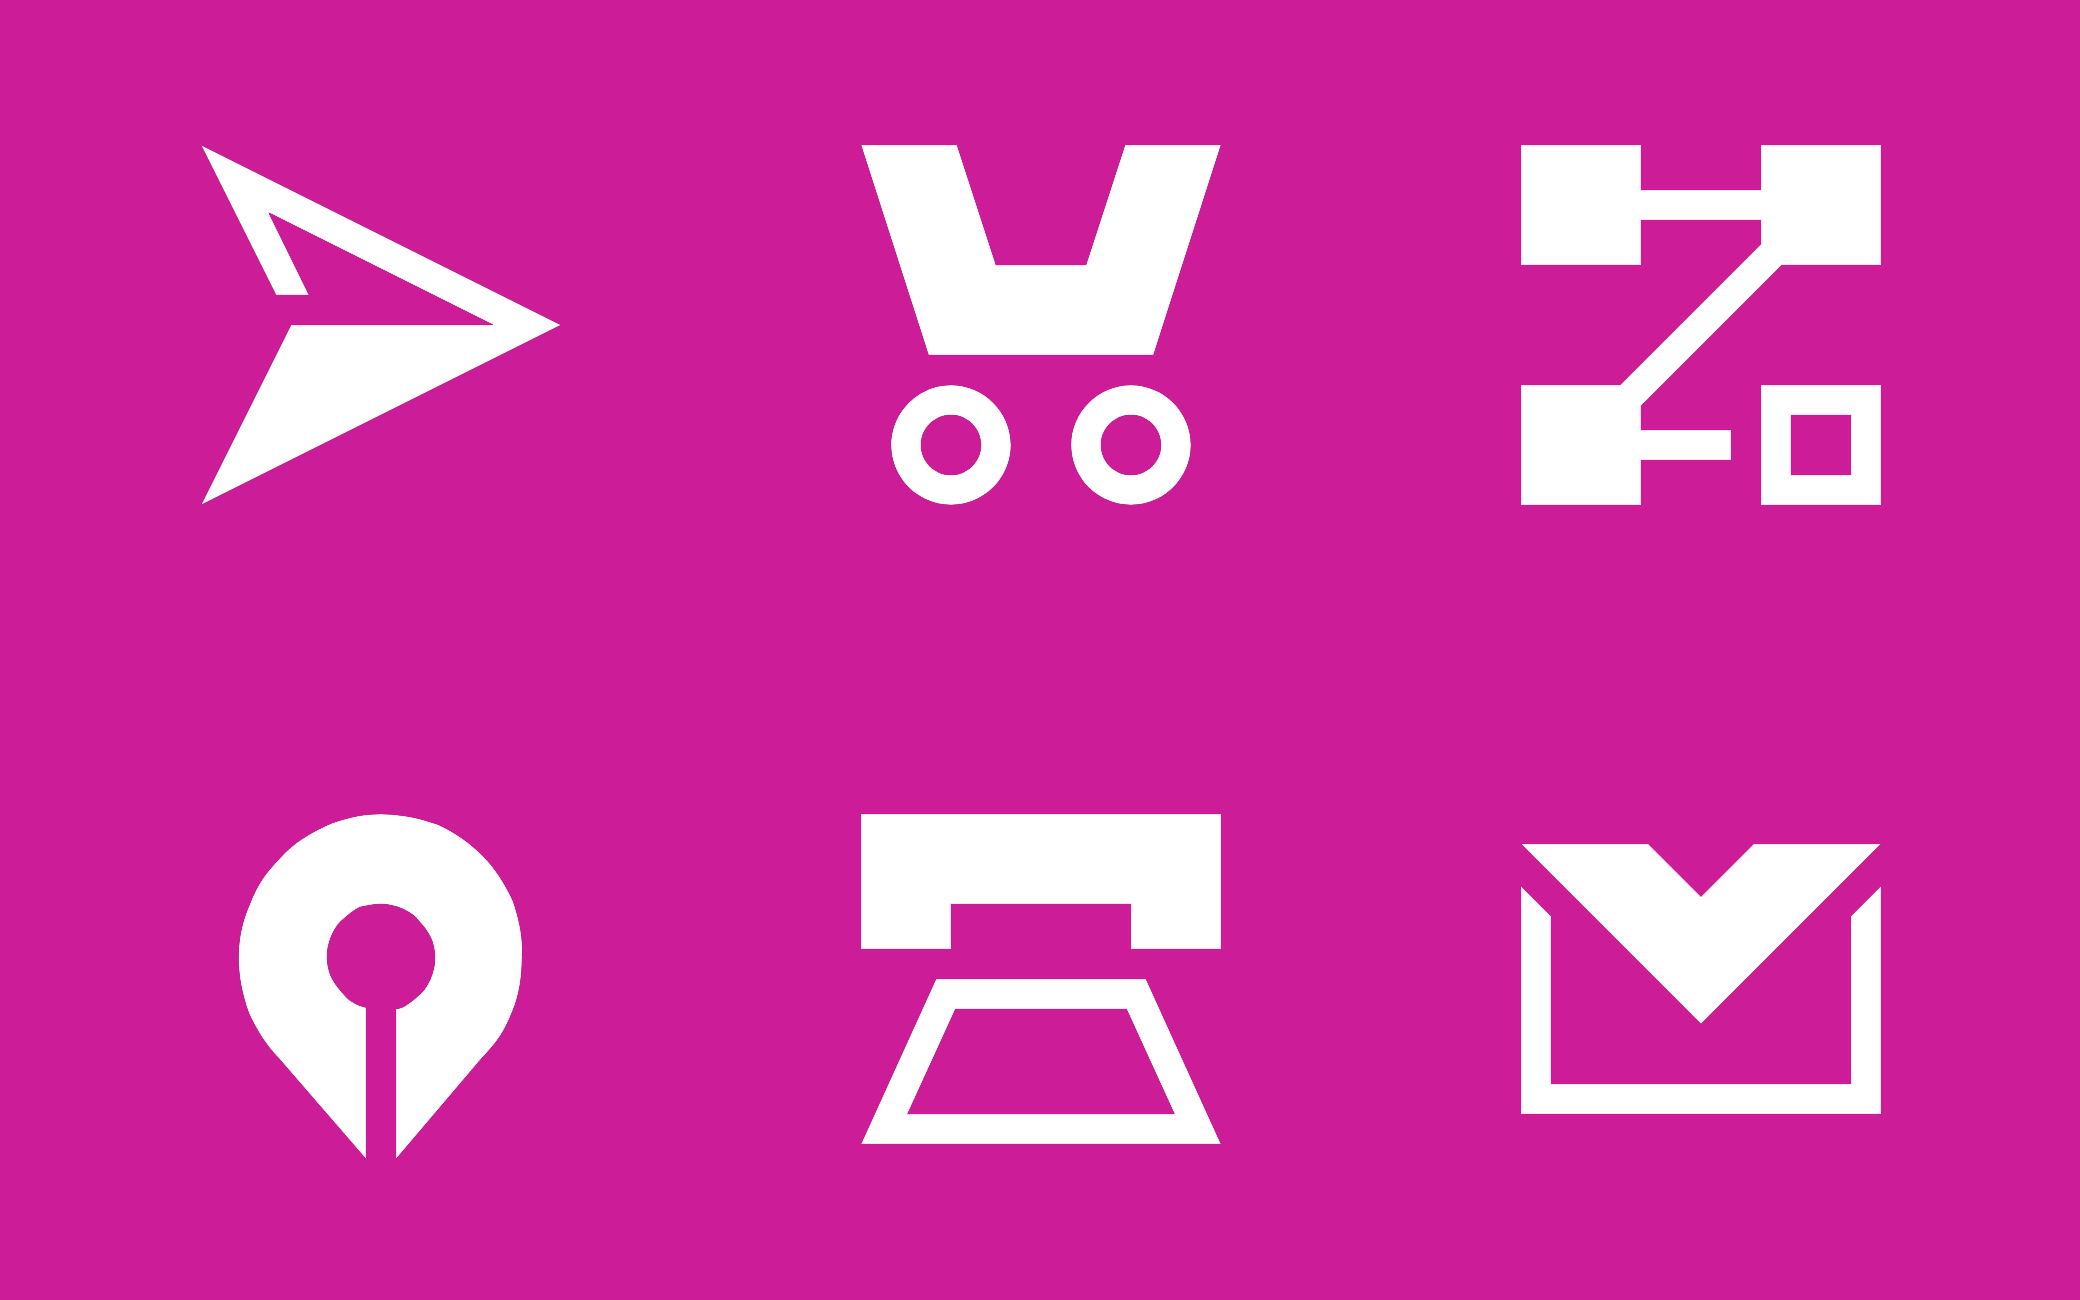 Adobe has released free vector icons, created by leading designers ...